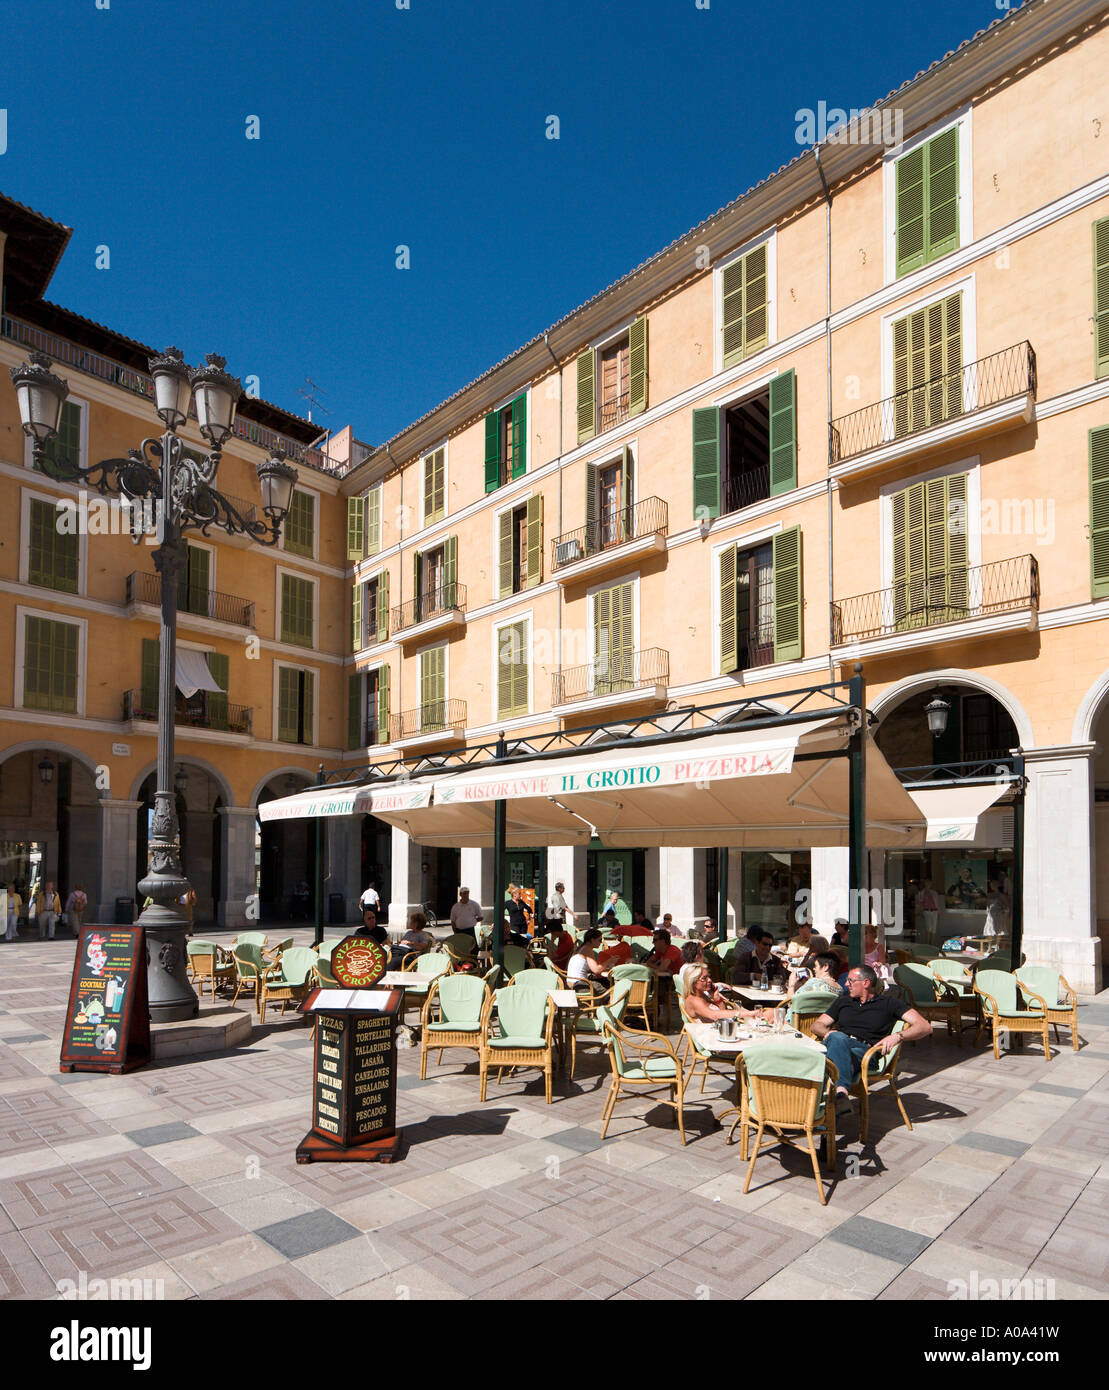 Street cafe in the Plaza Mayor (Placa Major) in the winter season, Palma, Mallorca, Balearic Islands, Spain - Stock Image